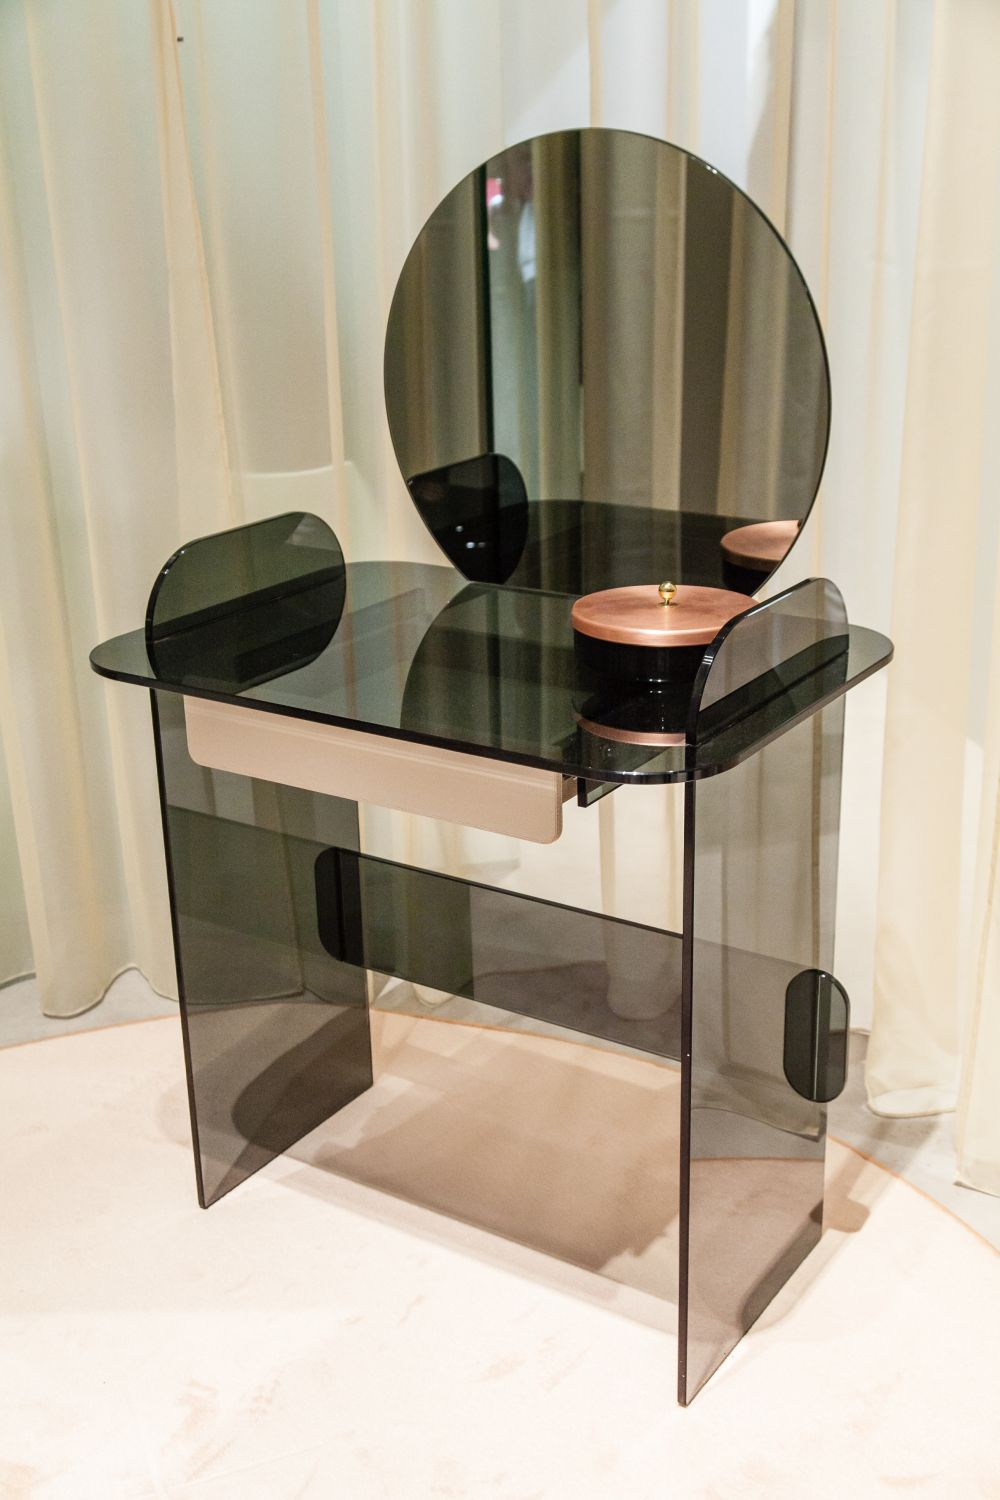 Table Extensible Design Italien glass shokesh design - kumpalo.parkersydnorhistoric